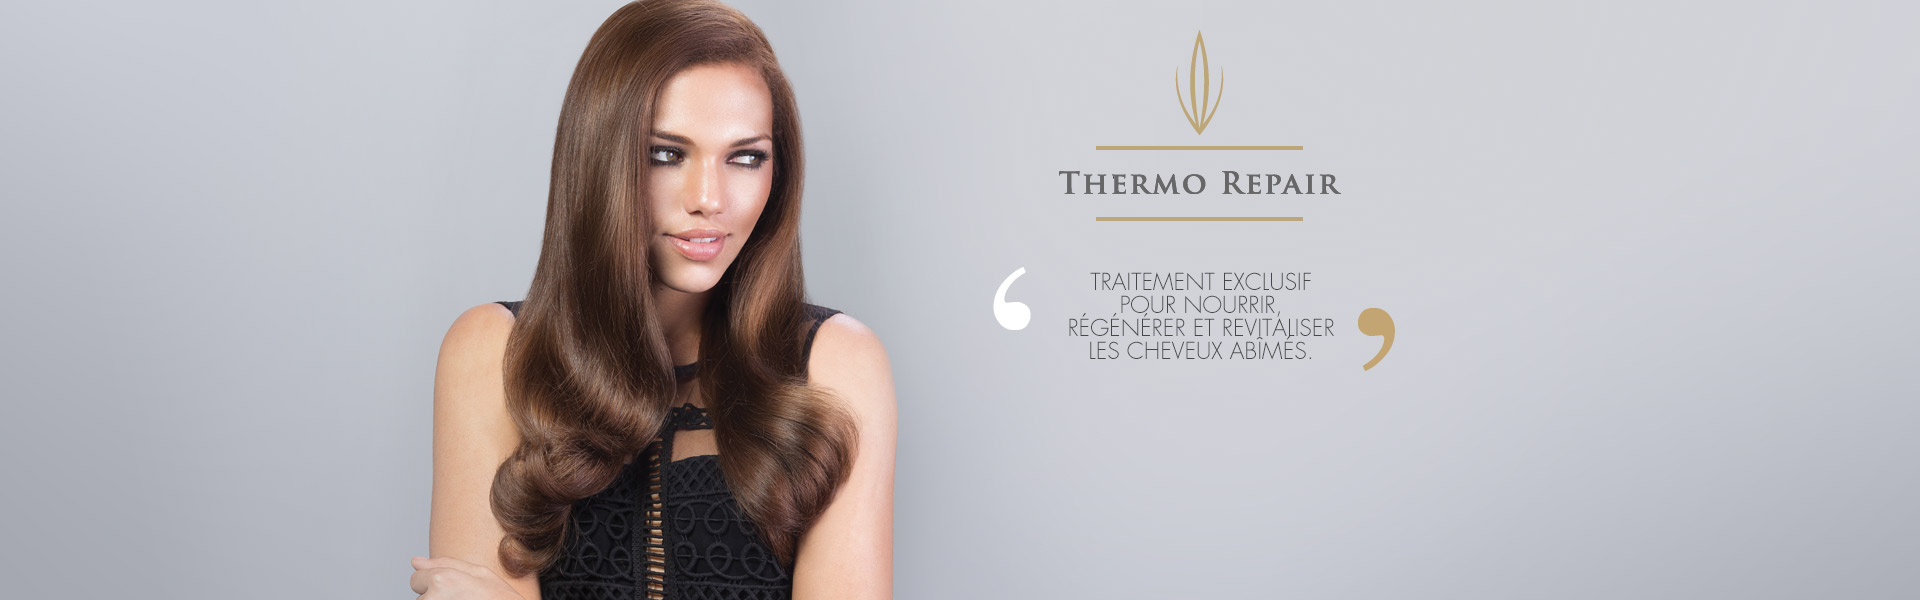 thermo_repair_fr